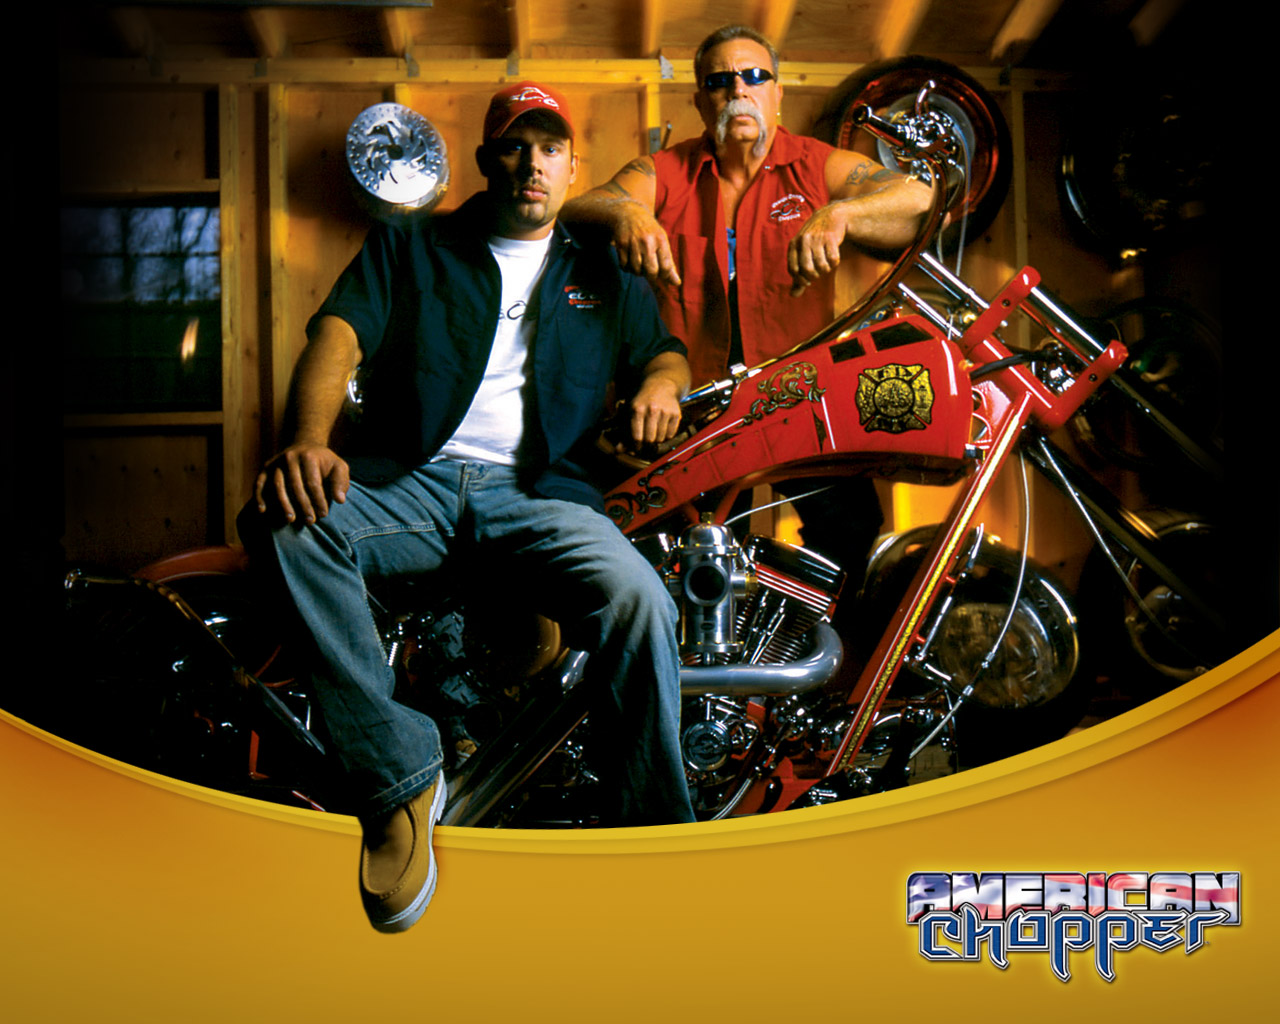 American chopper   Orange County Choppers Wallpaper 124426 1280x1024